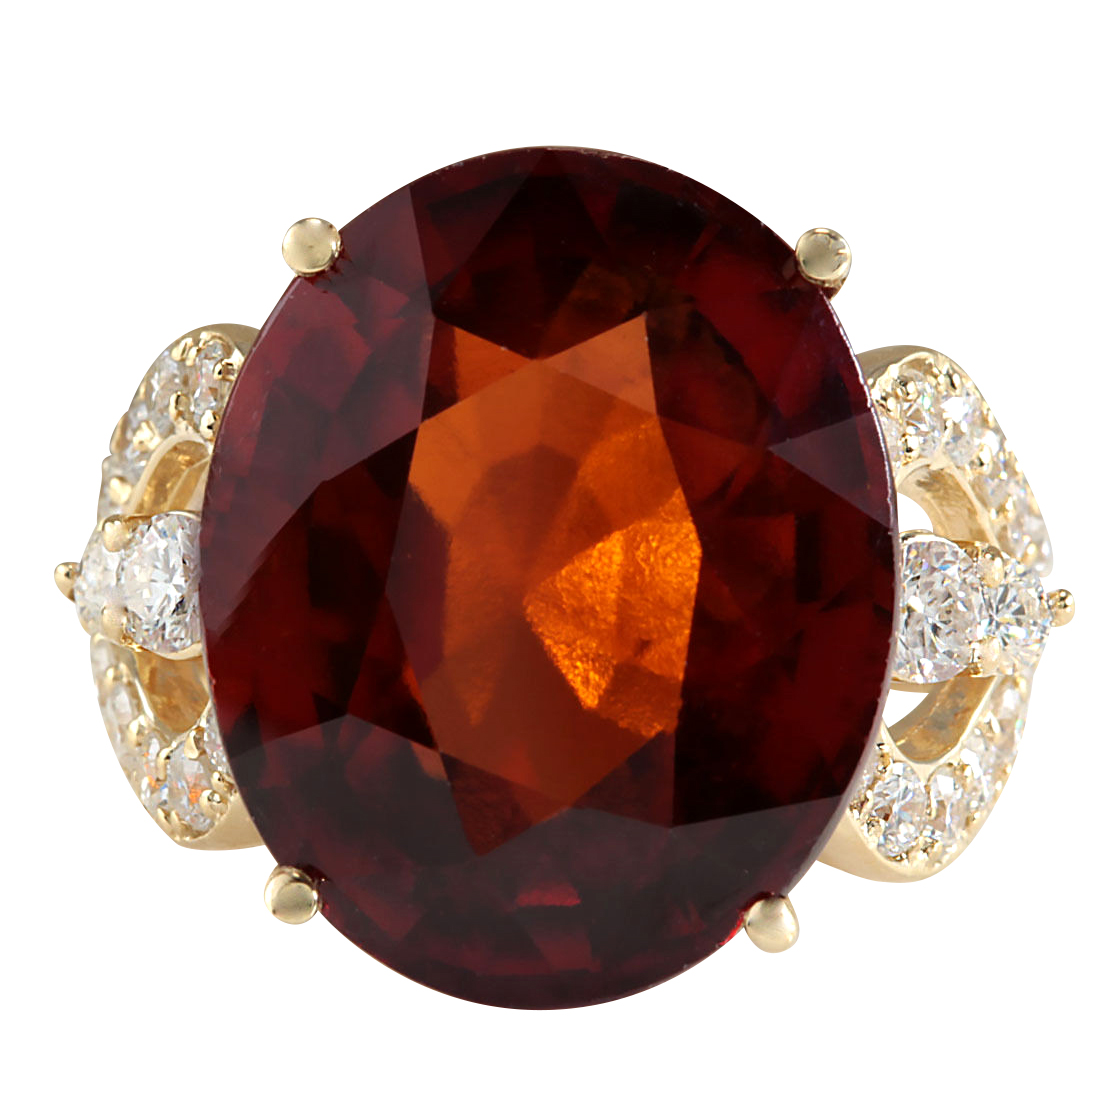 19.58CTW Natural Hessonite Garnet And Diamond Ring In 14K Yellow Gold by